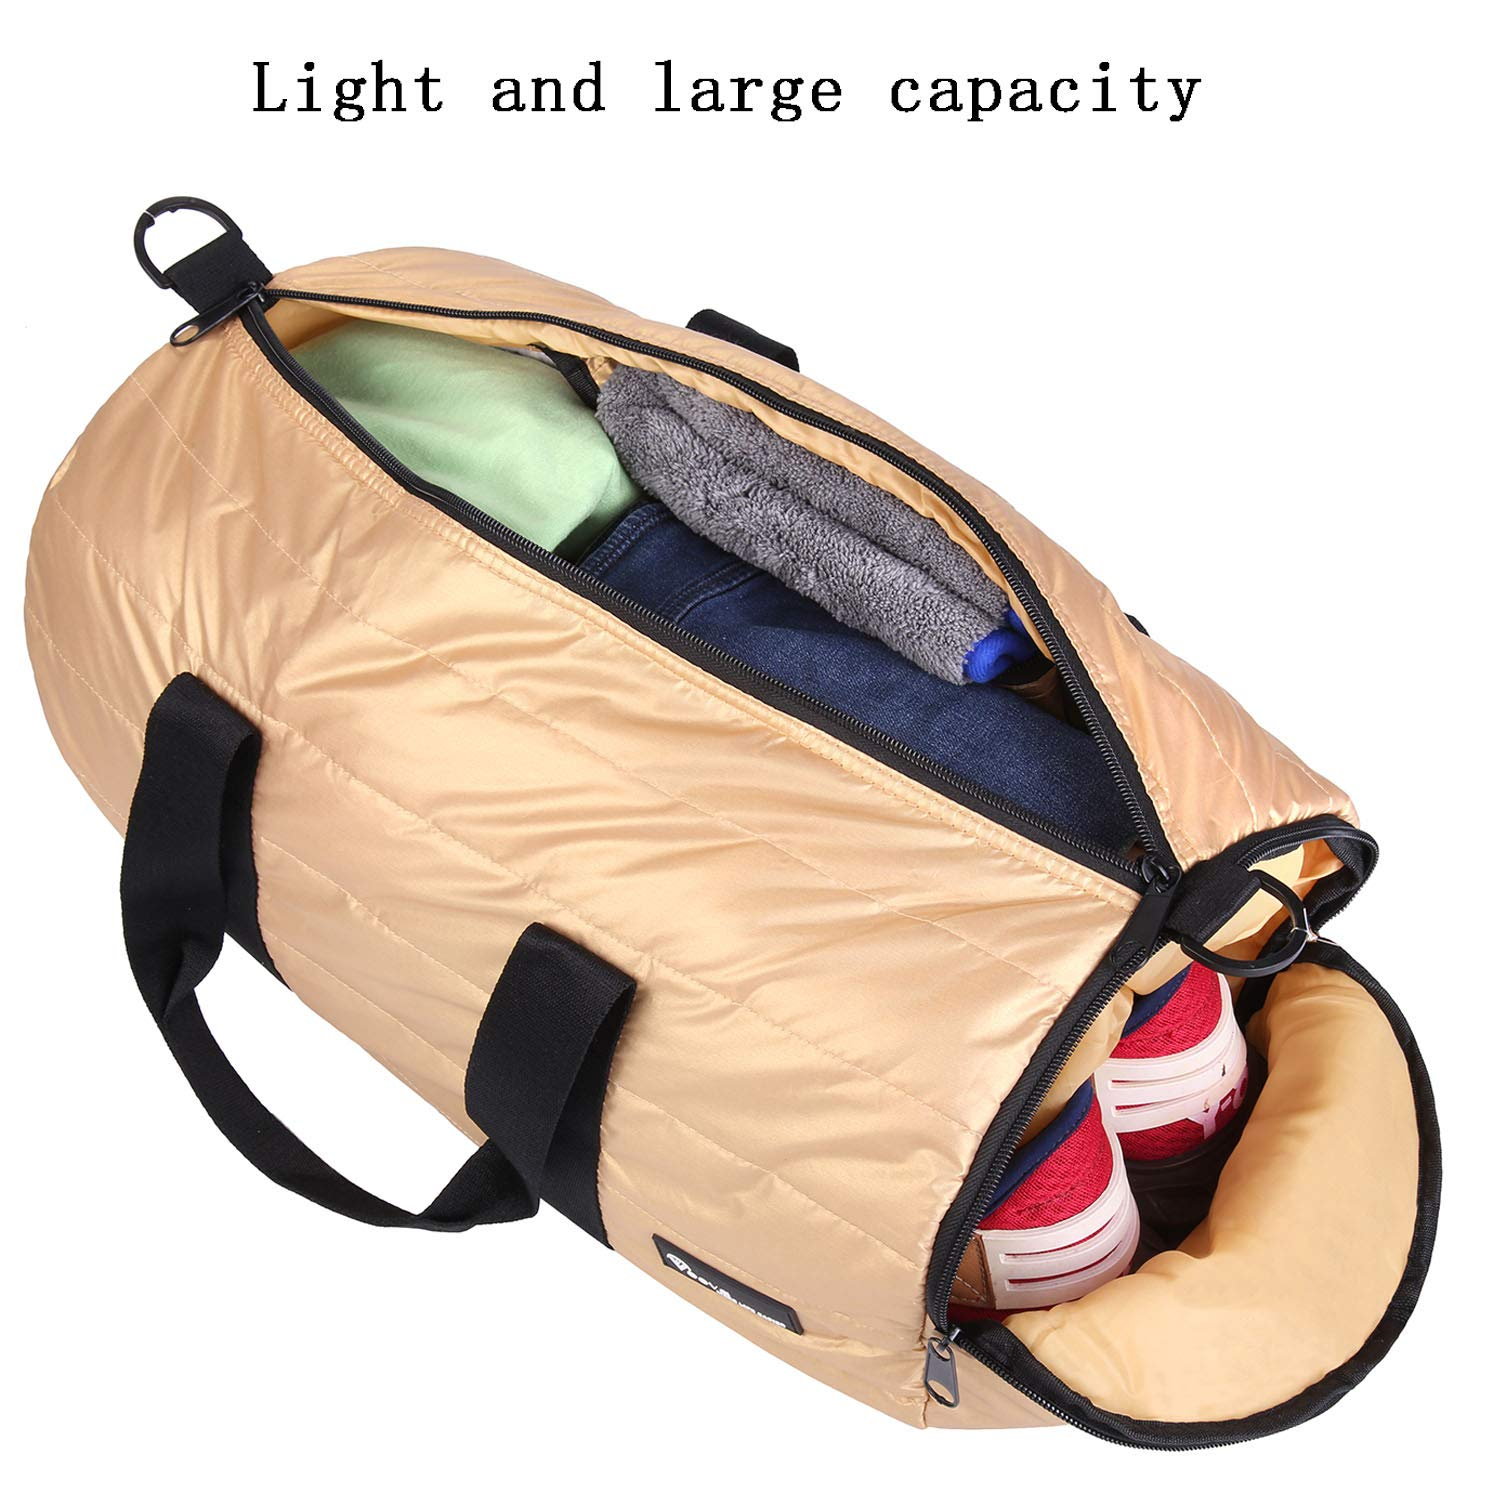 Voova Fitness Sports Gym Bag, Small Foldable Travel Duffel Bag Packable Workout Bags for Men Women with Shoes Compartment, Lightweight Rolling Yoga Overnight Tote Bag Pack